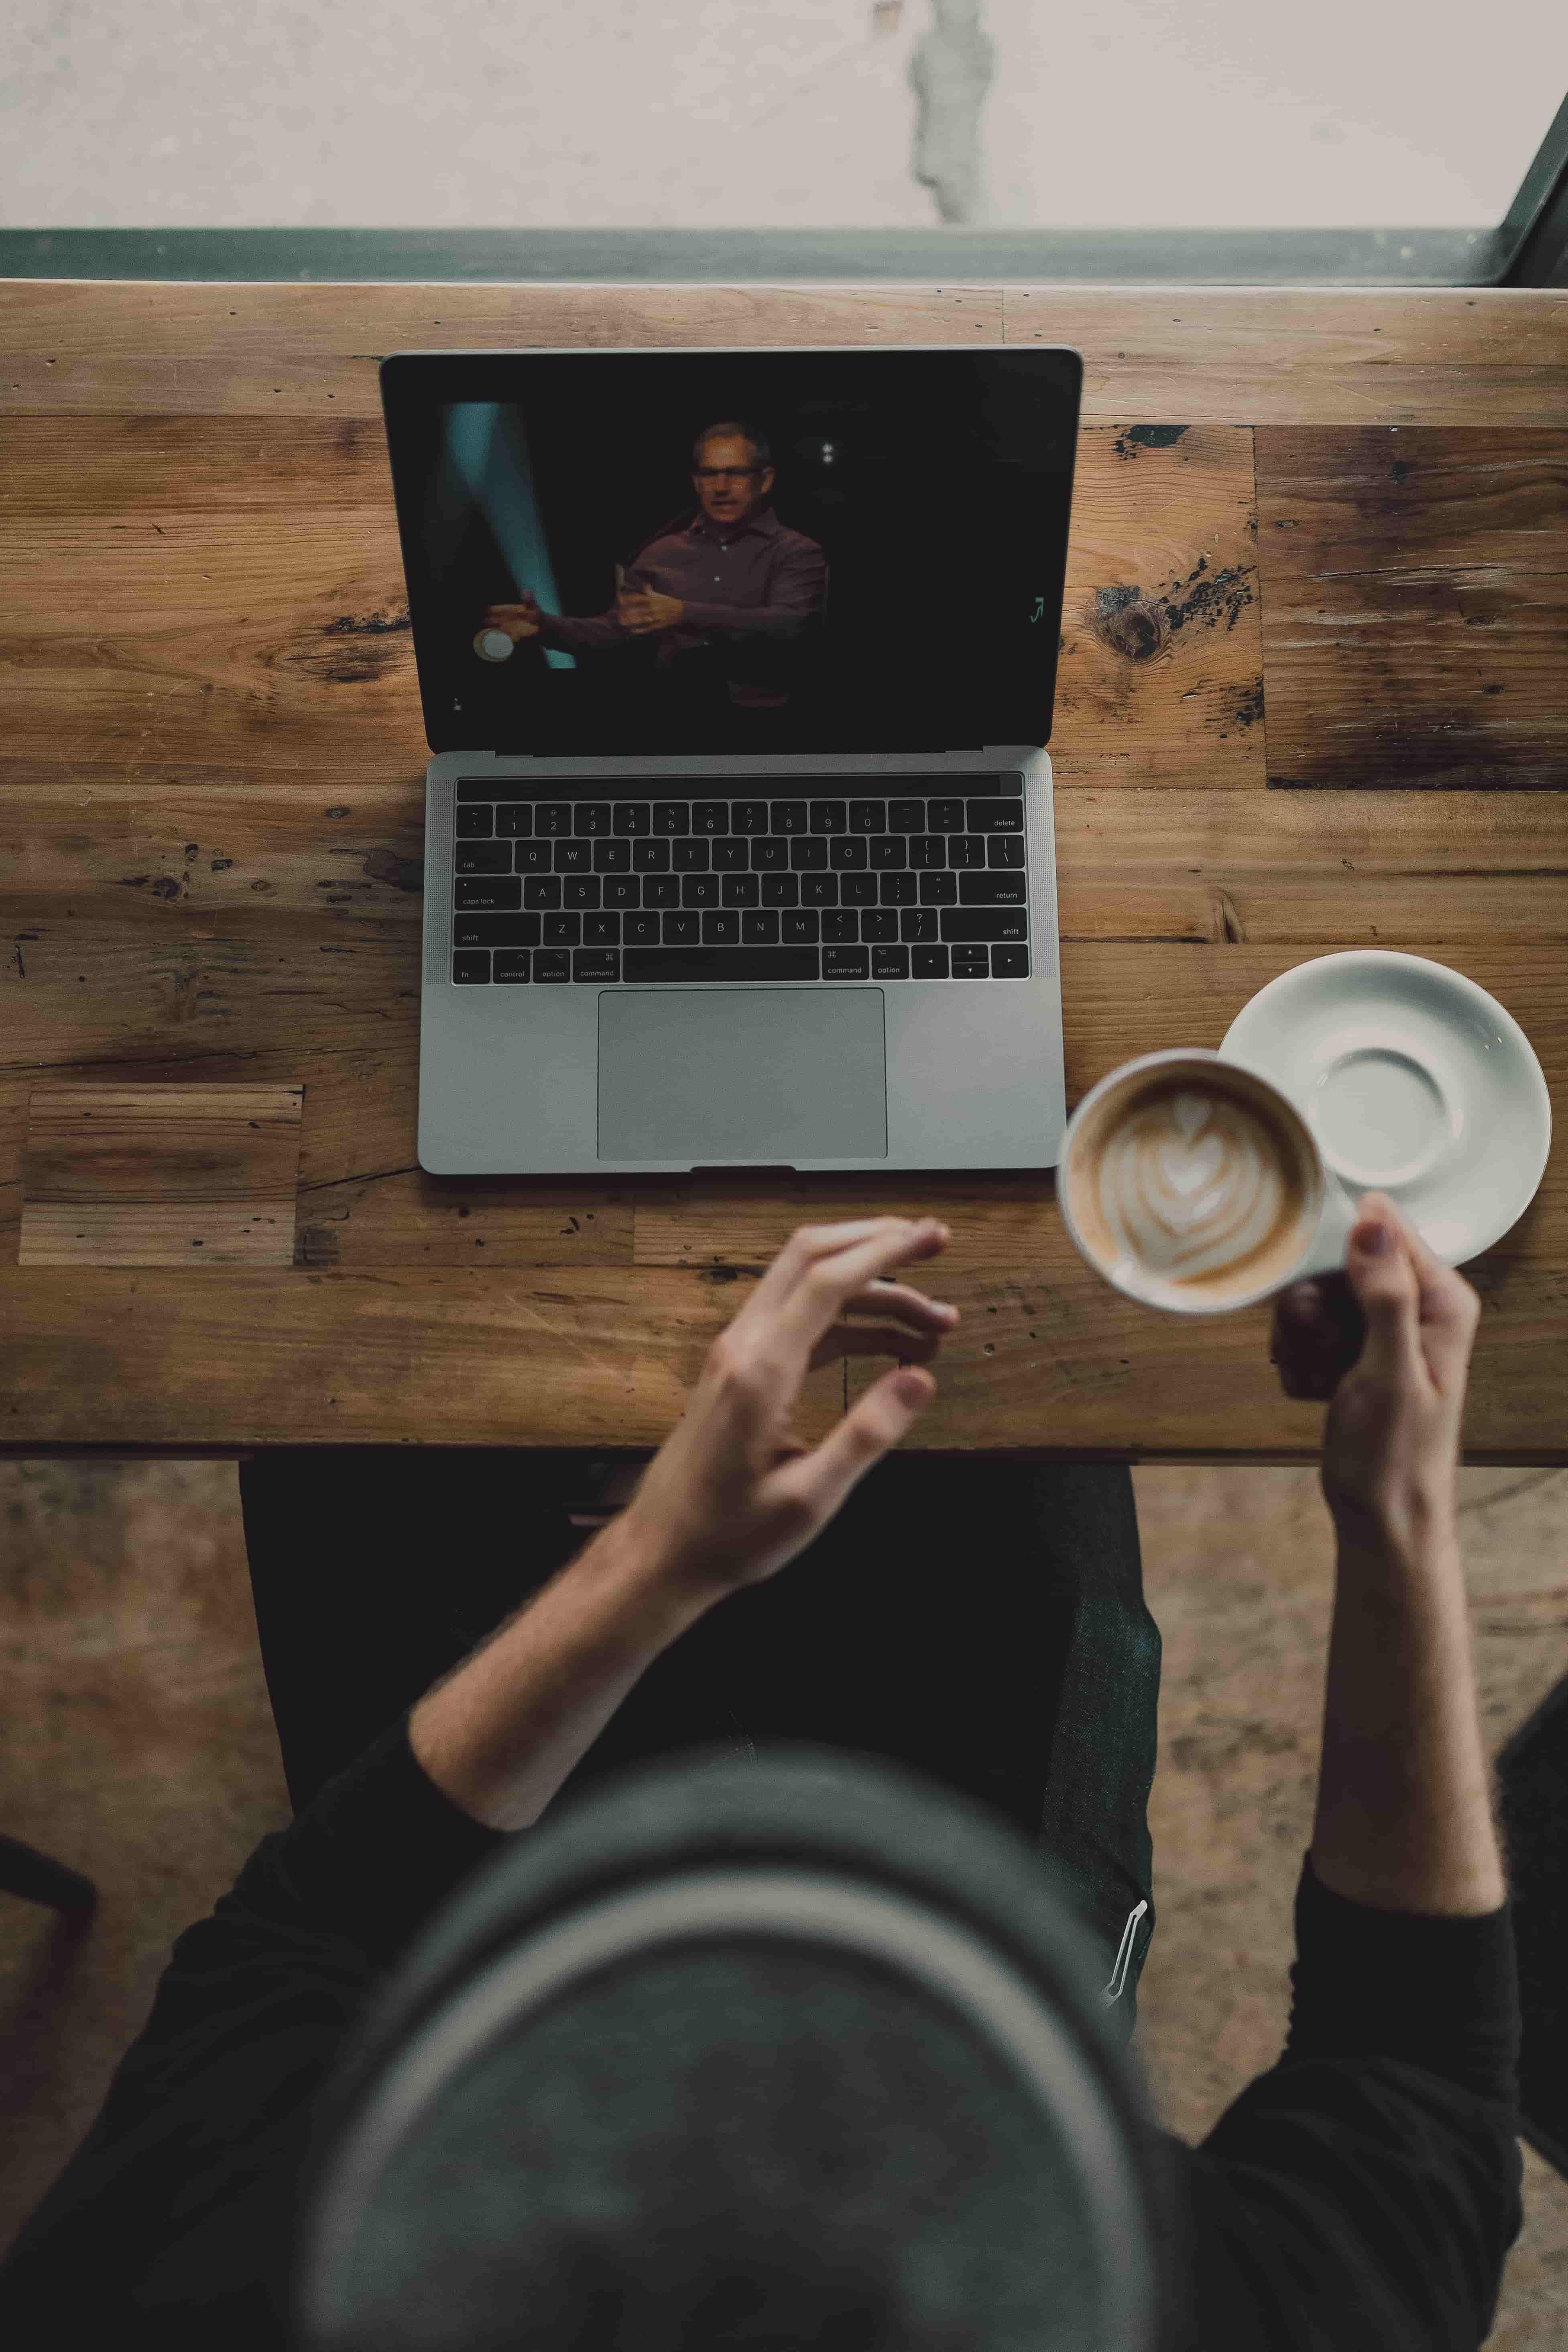 Video content is more popular than ever and will help grow a business